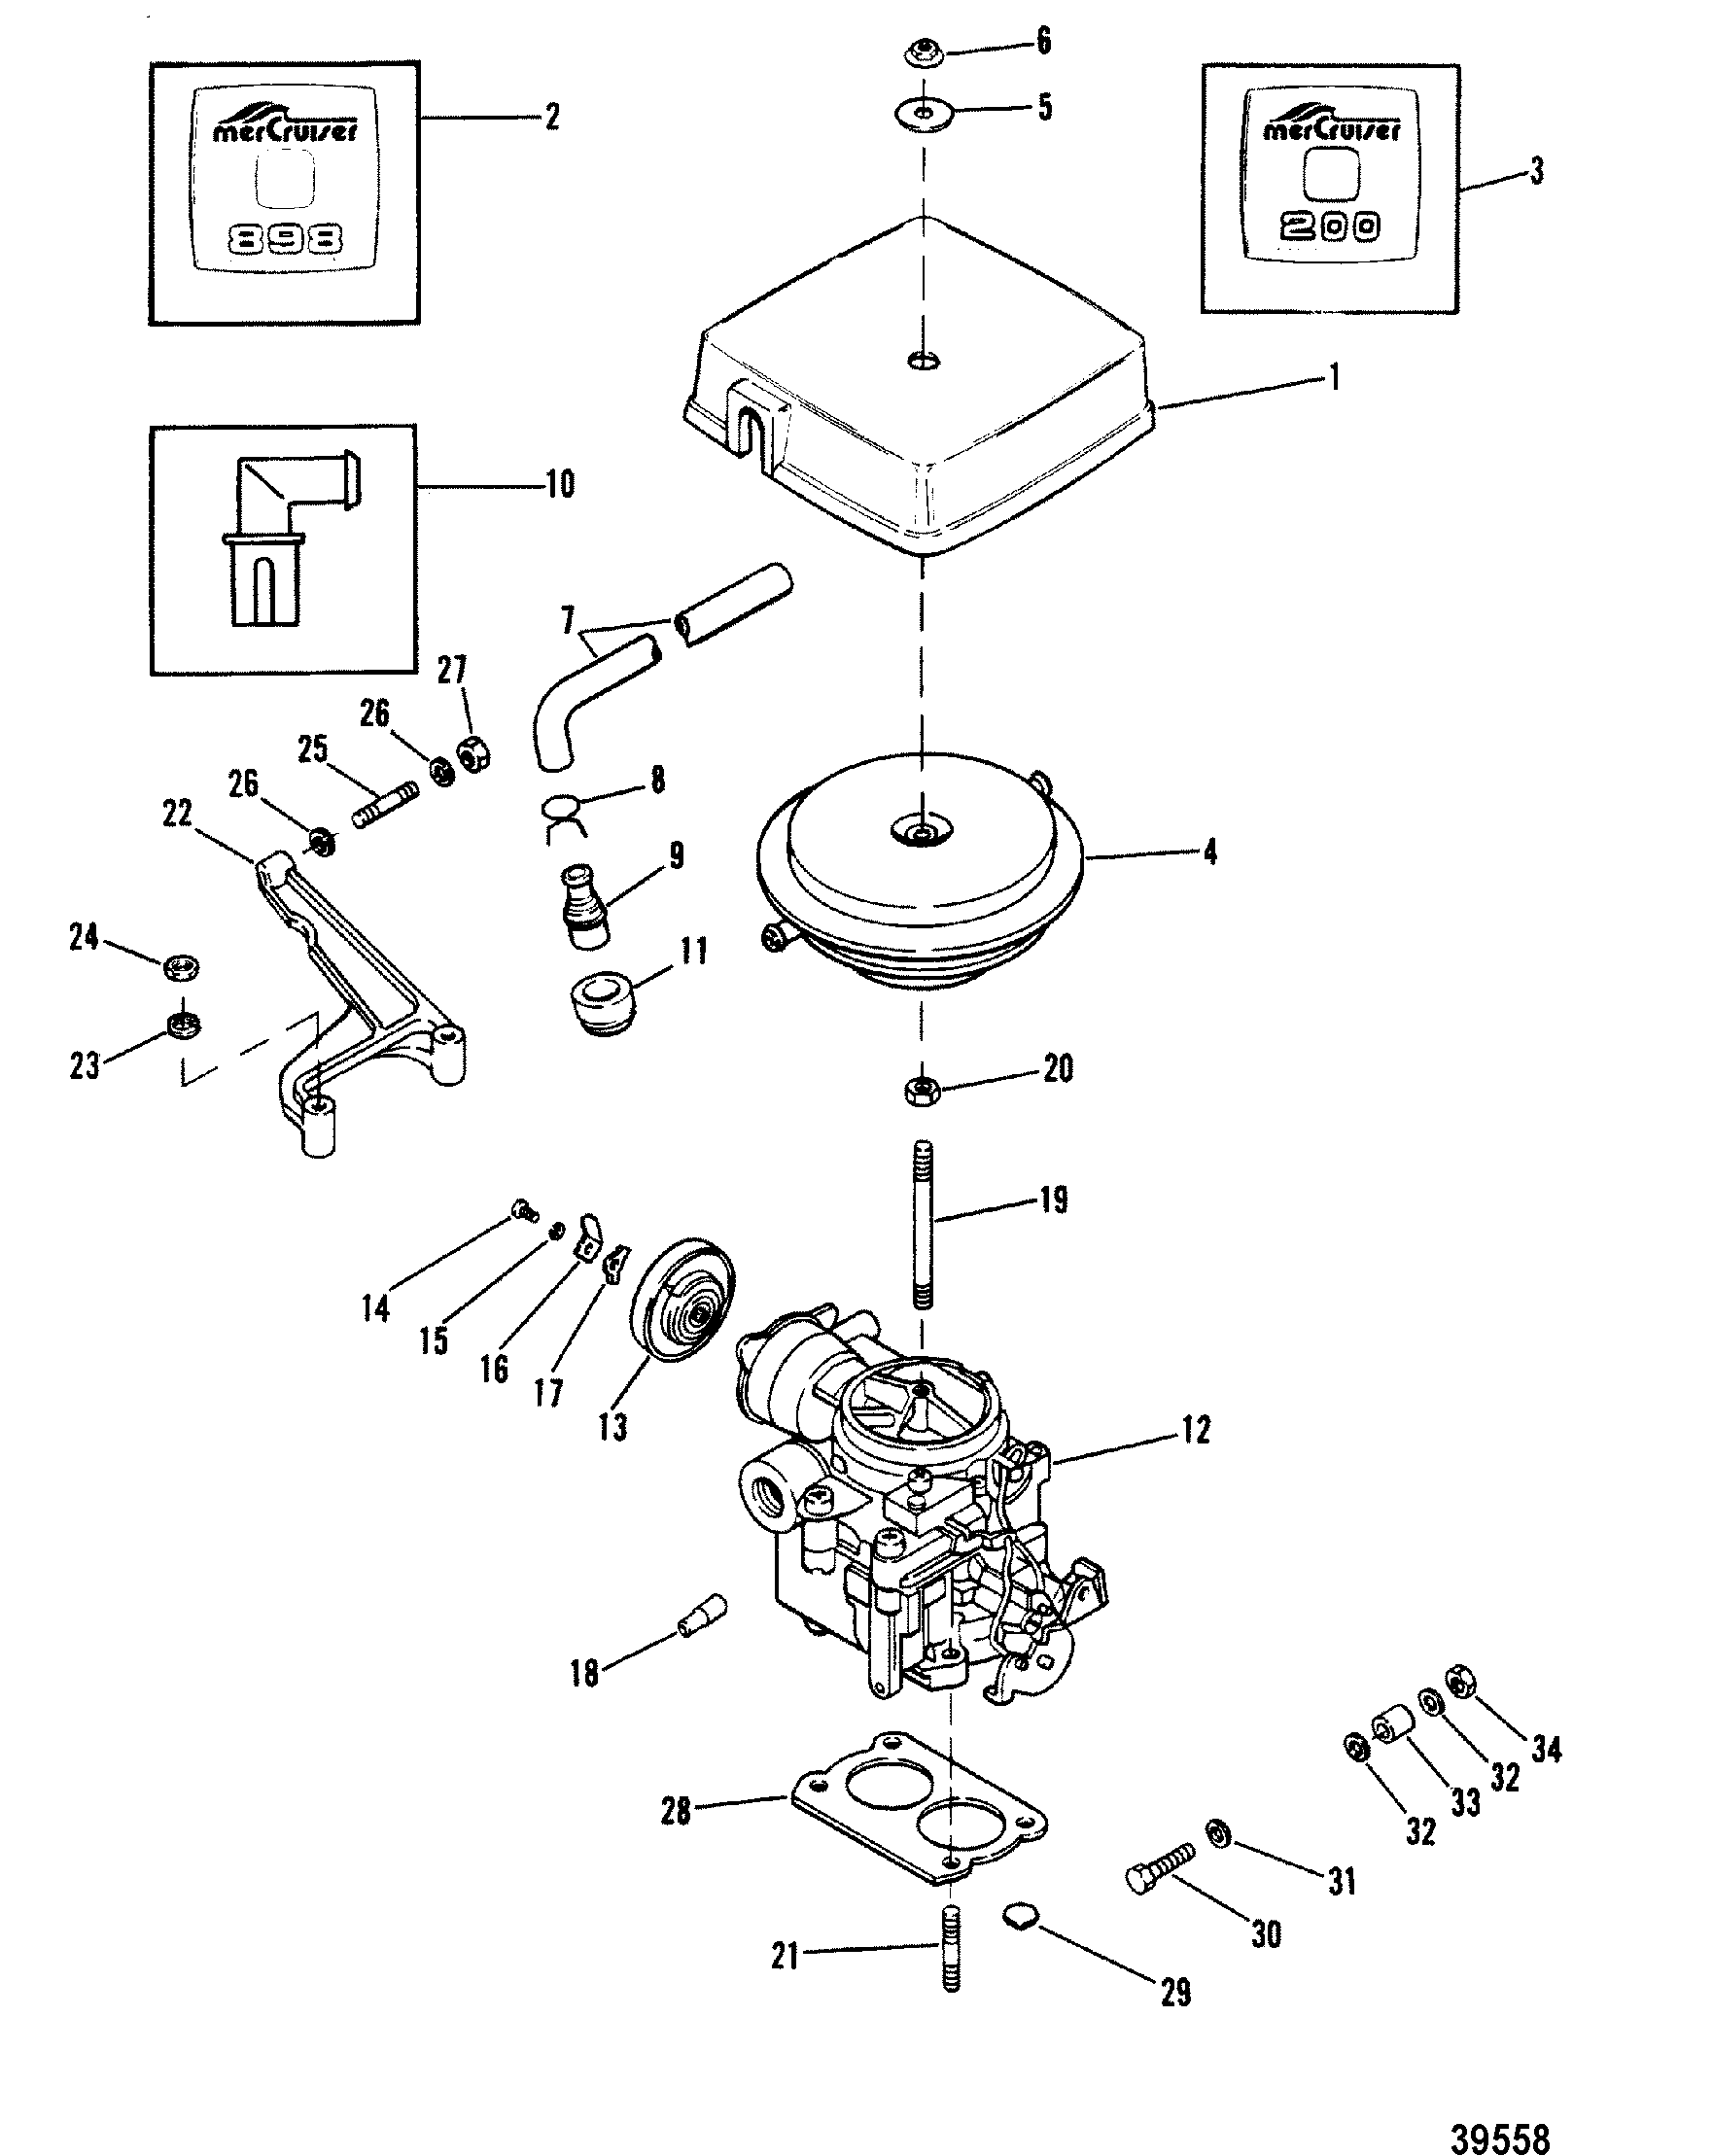 4010 on toro s200 snowblower parts diagram